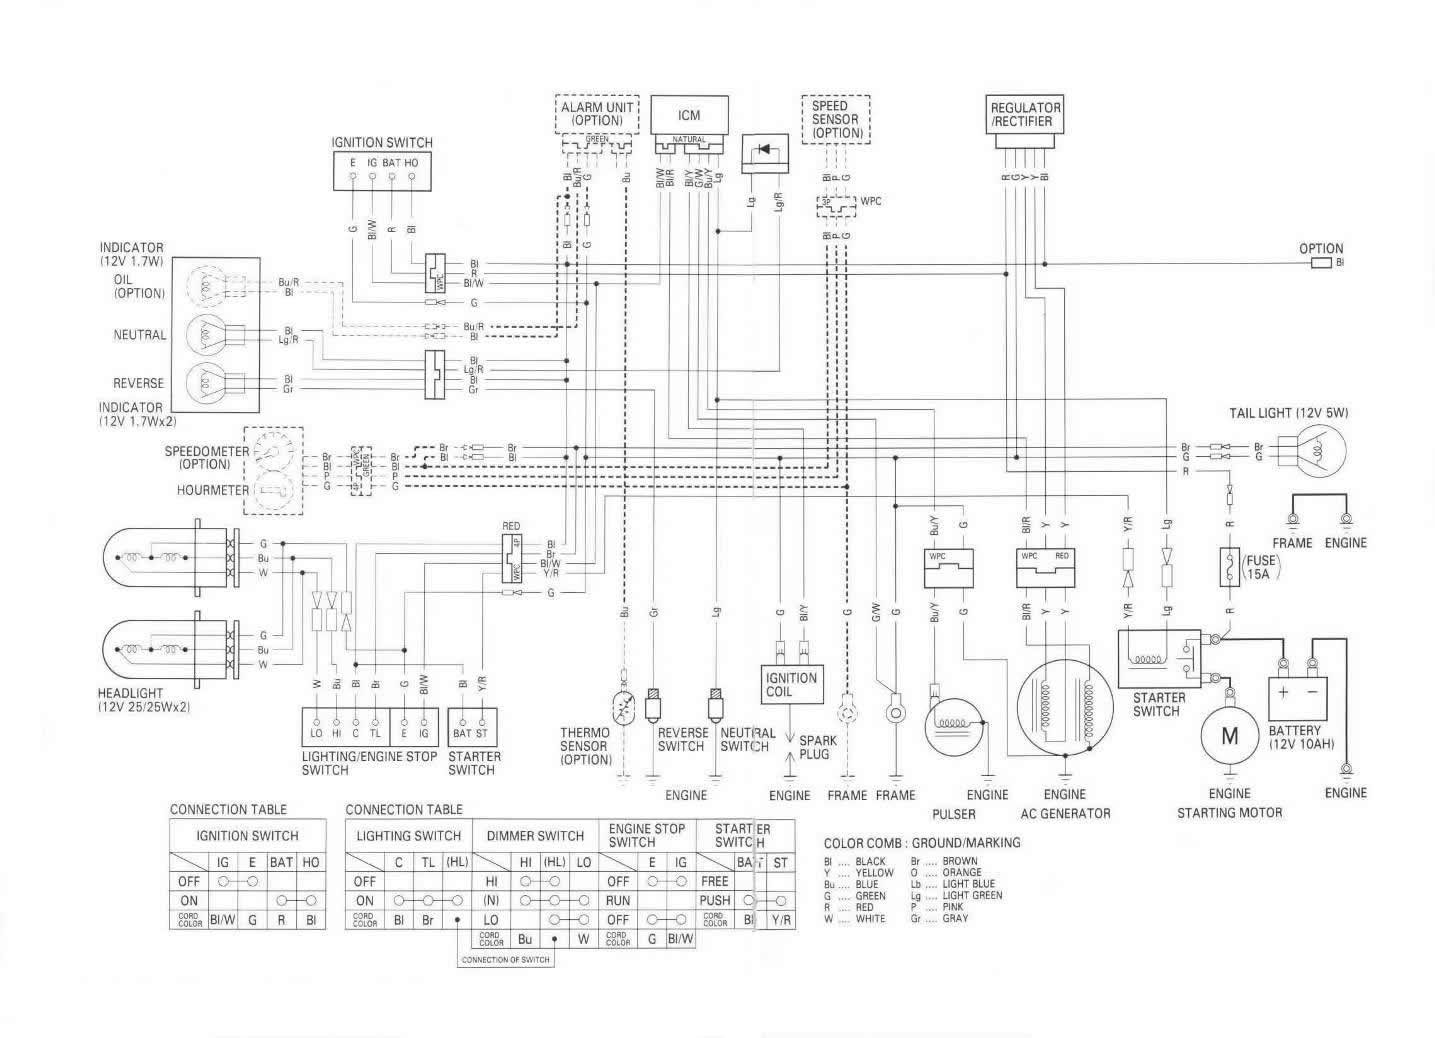 2005 Trx 450r Wiring Diagram I Need A Fuse Box Diagram For 89 Silverado Fuses Boxs Kdx 200 Jeanjaures37 Fr